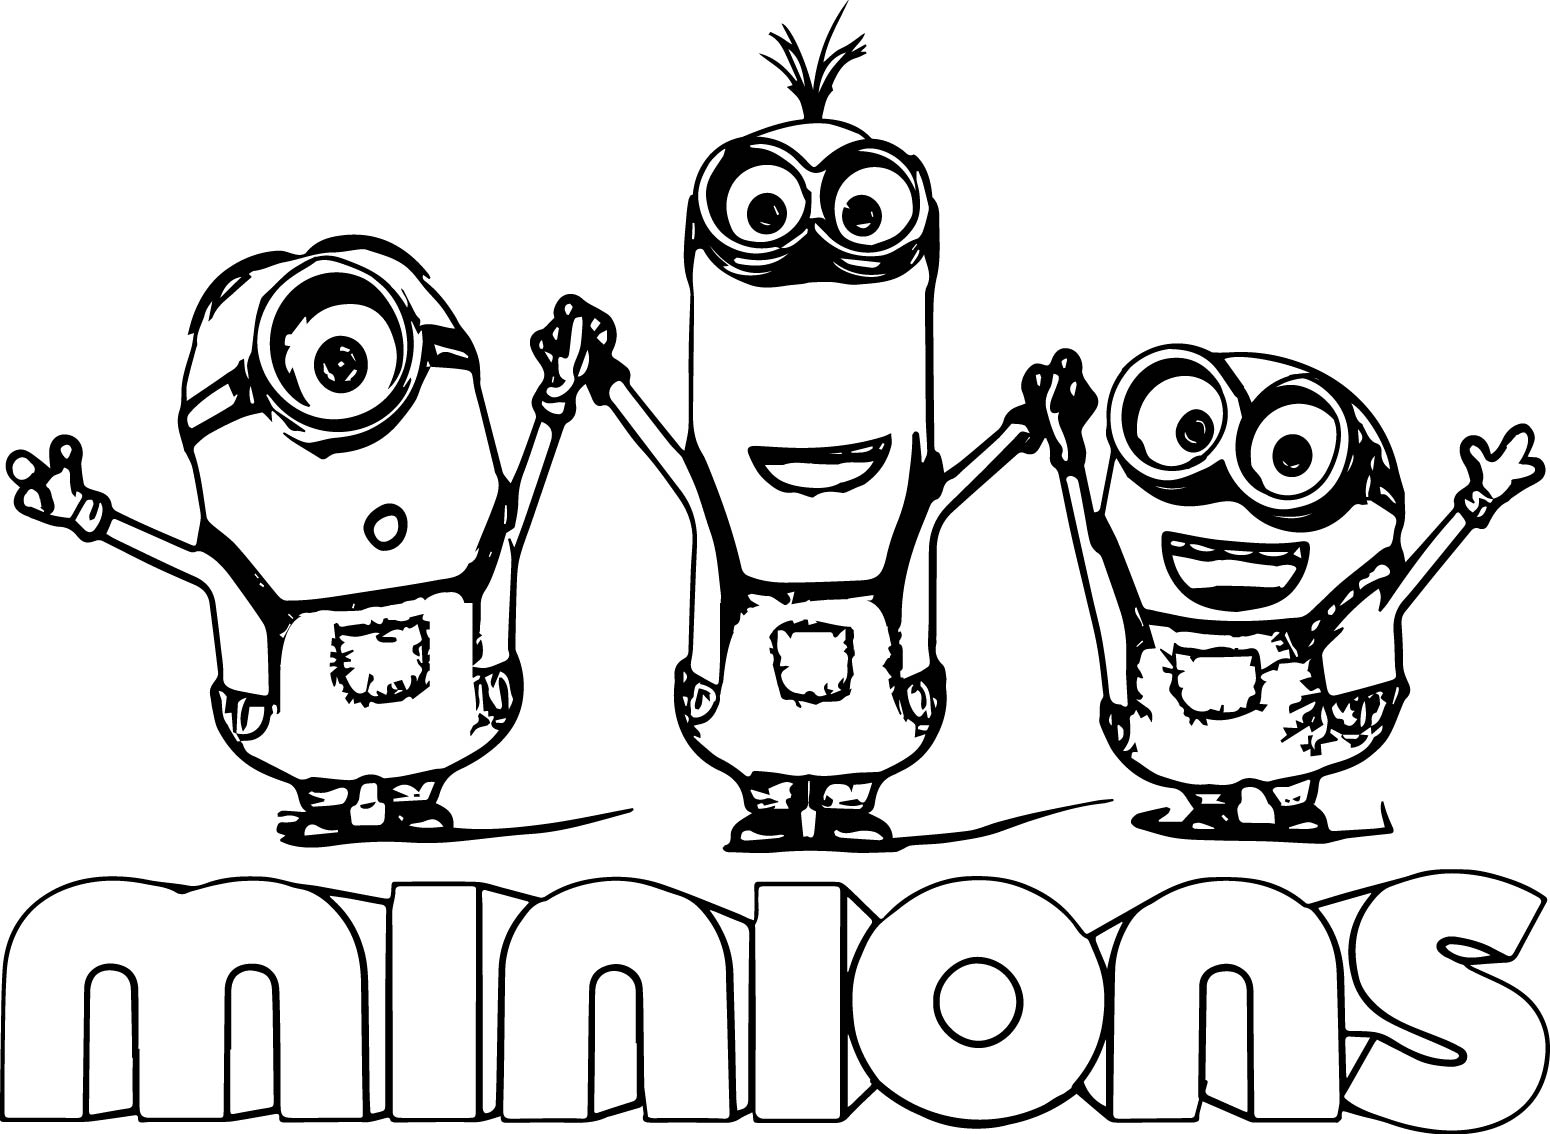 Minions coloring pages peace minion ~ Minion Text Minions Backyard Bash Coloring Page ...